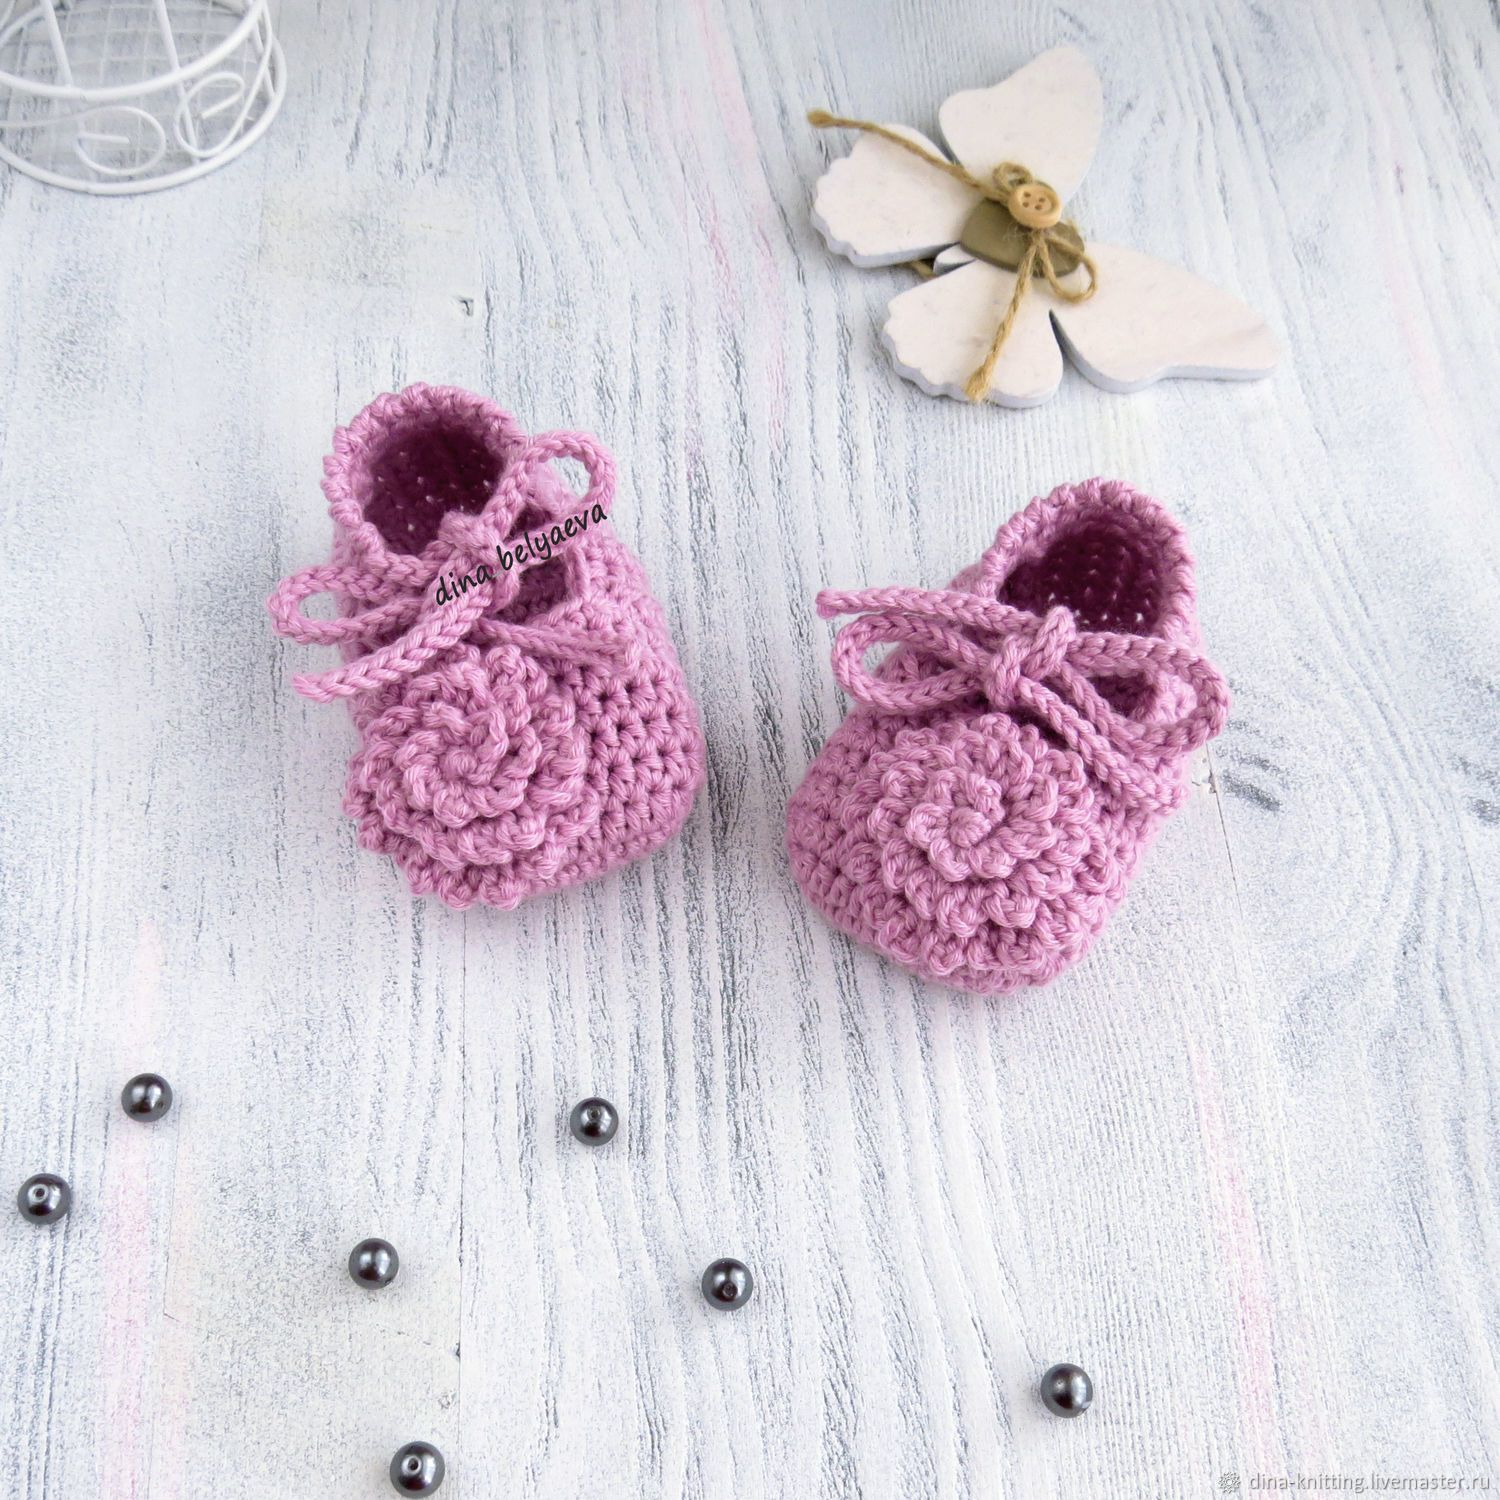 d7b5d46c3d3ff Knitted booties the sandals for girls, pink, 3-6 months – shop online on  Livemaster with shipping - HGQJXCOM | Cheboksary